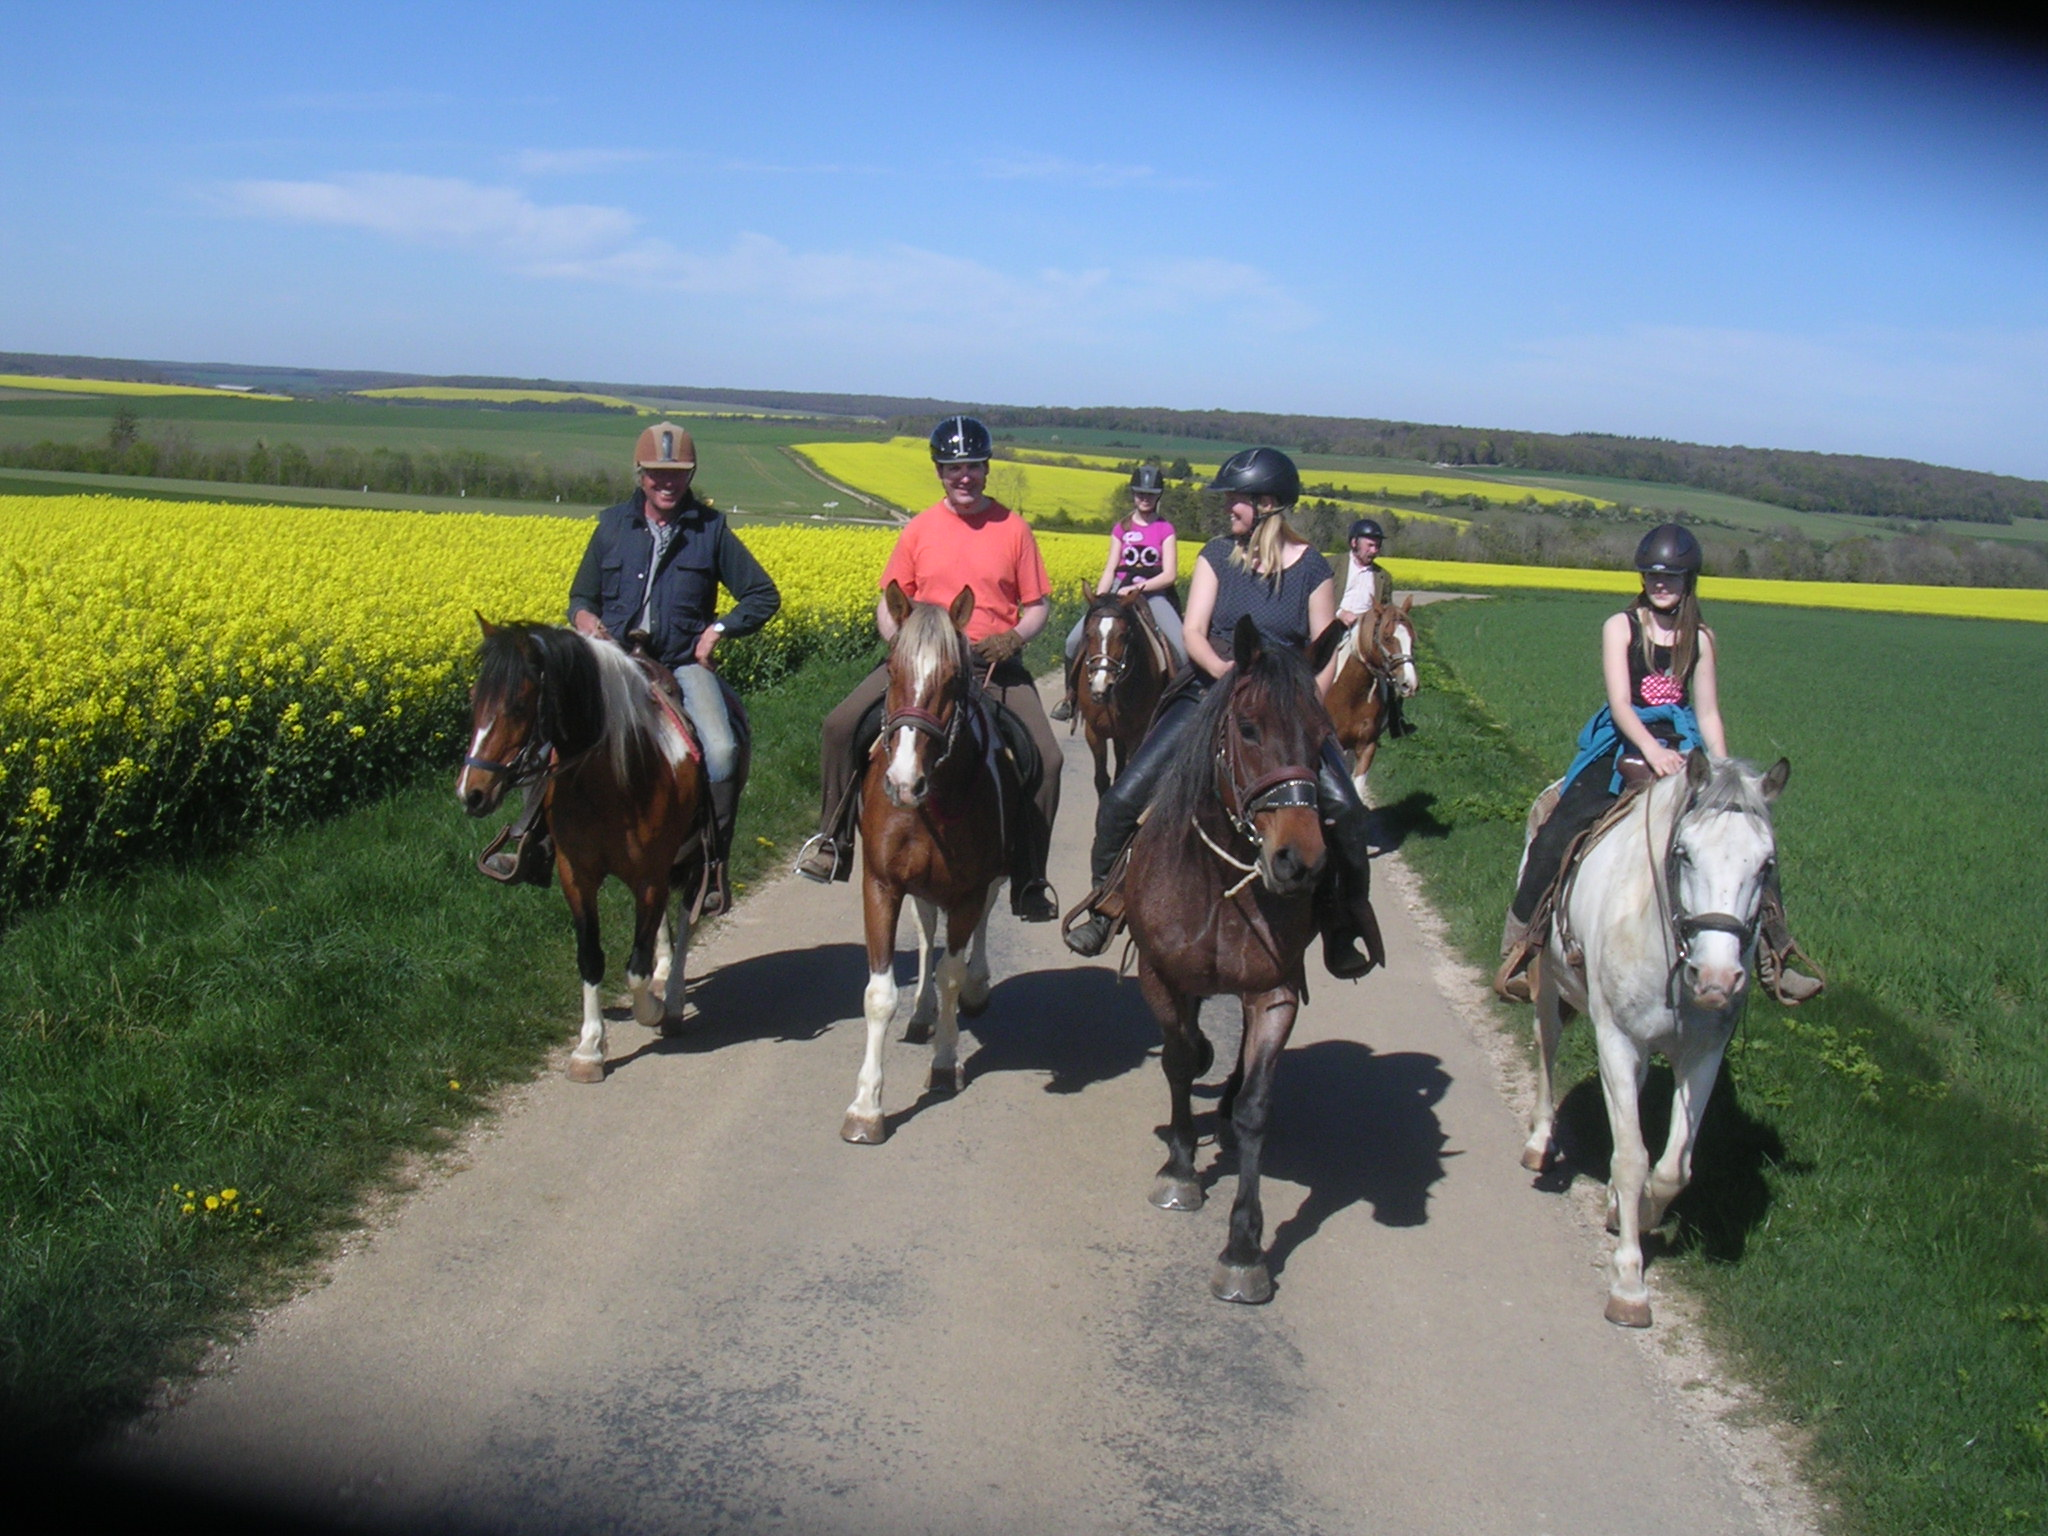 Horse back riding in France